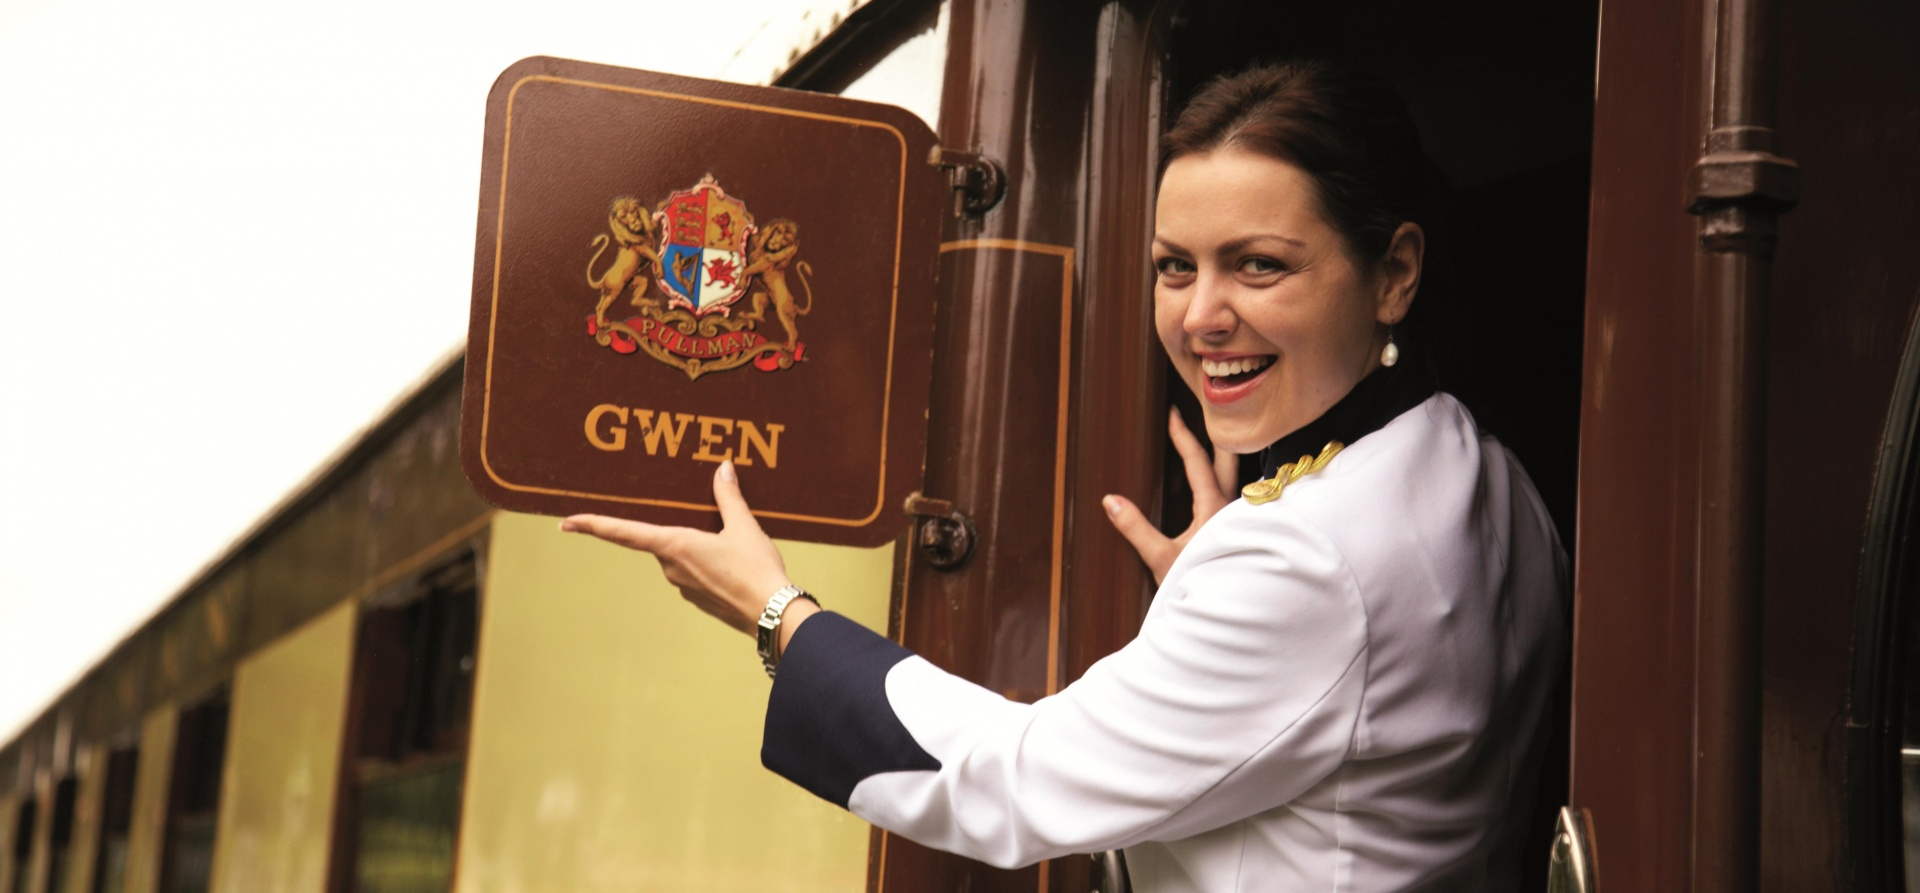 Day Excursions Aboard The Belmond British Pullman